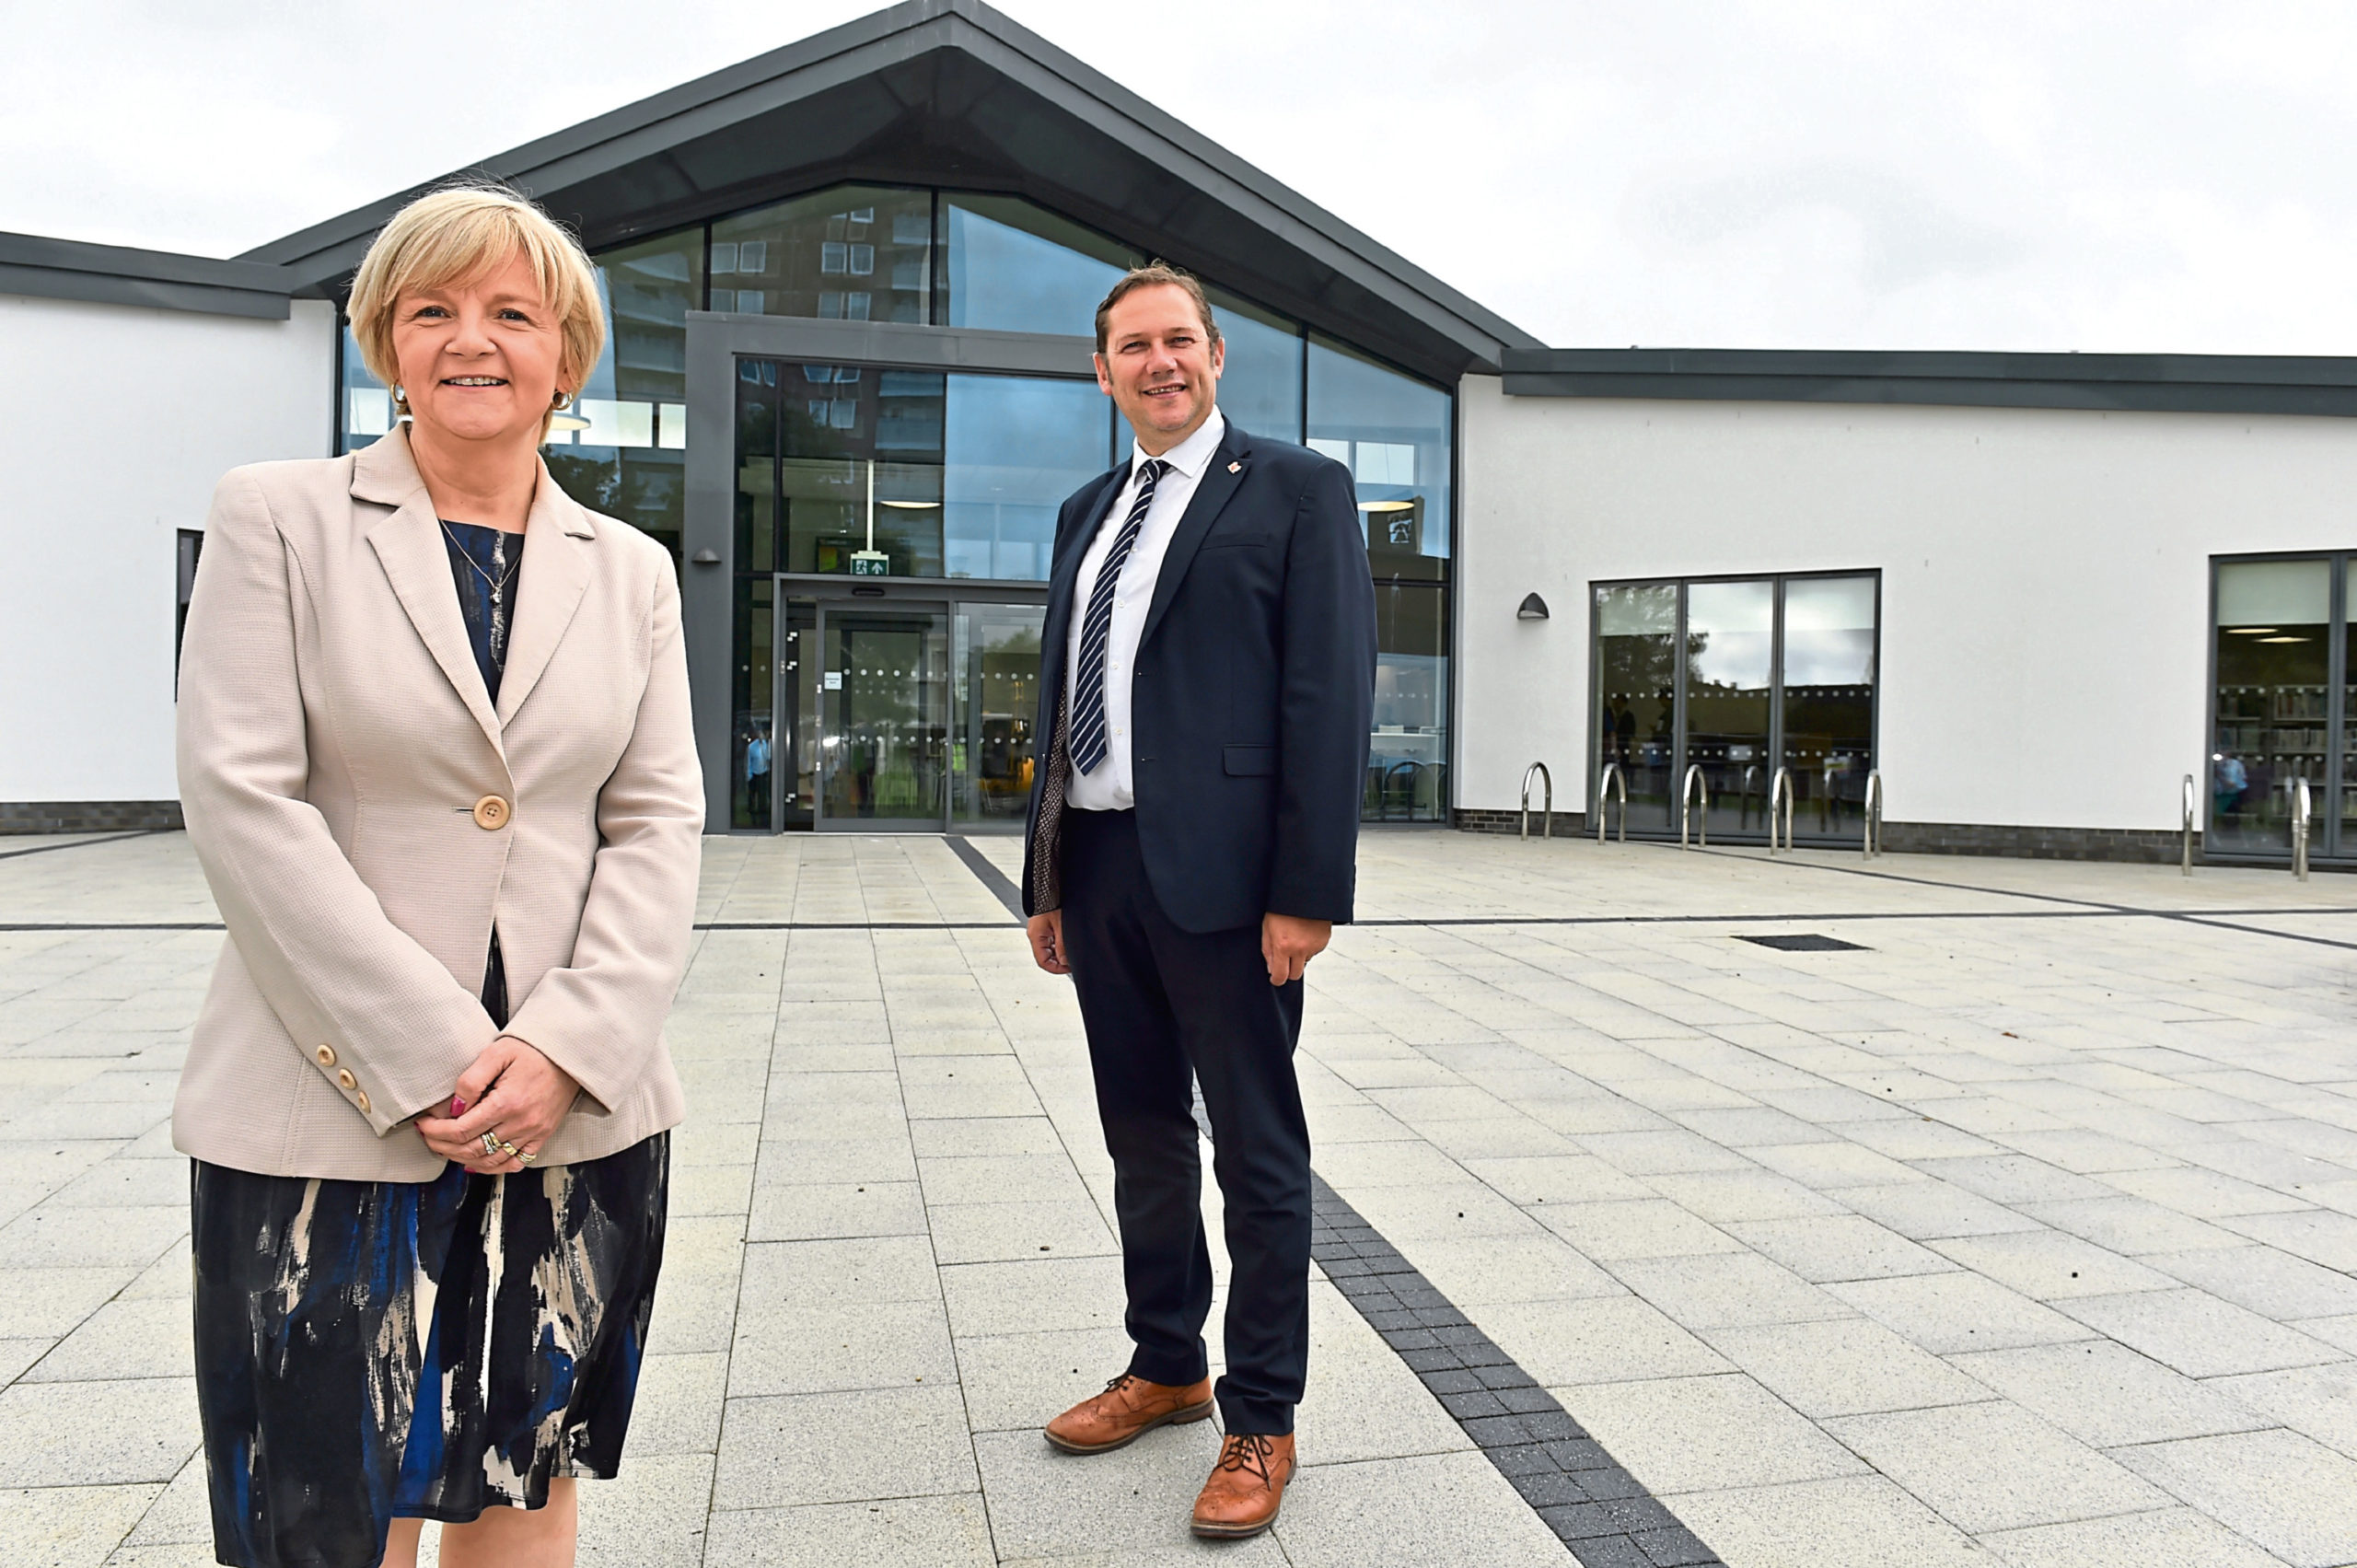 Aberdeen City Council co-leaders Douglas Lumsden and Jenny Laing